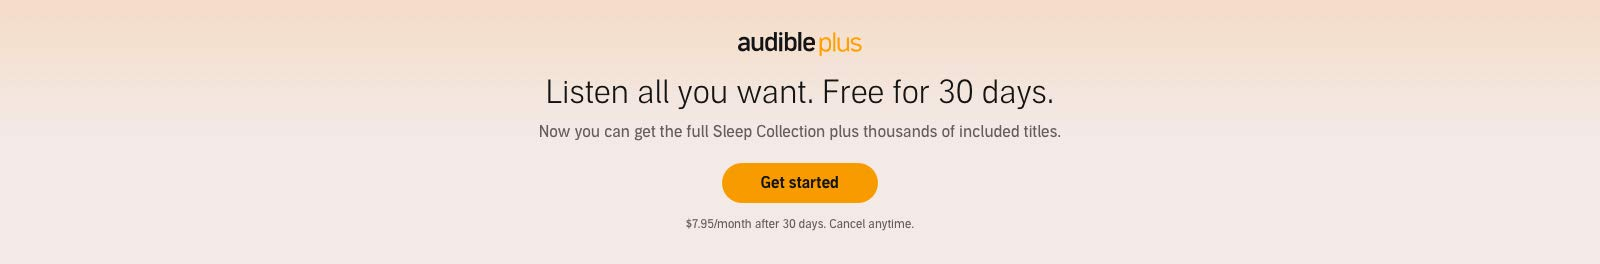 Try Audible free for 30 days to access the full Sleep Collection, plus a lot more.